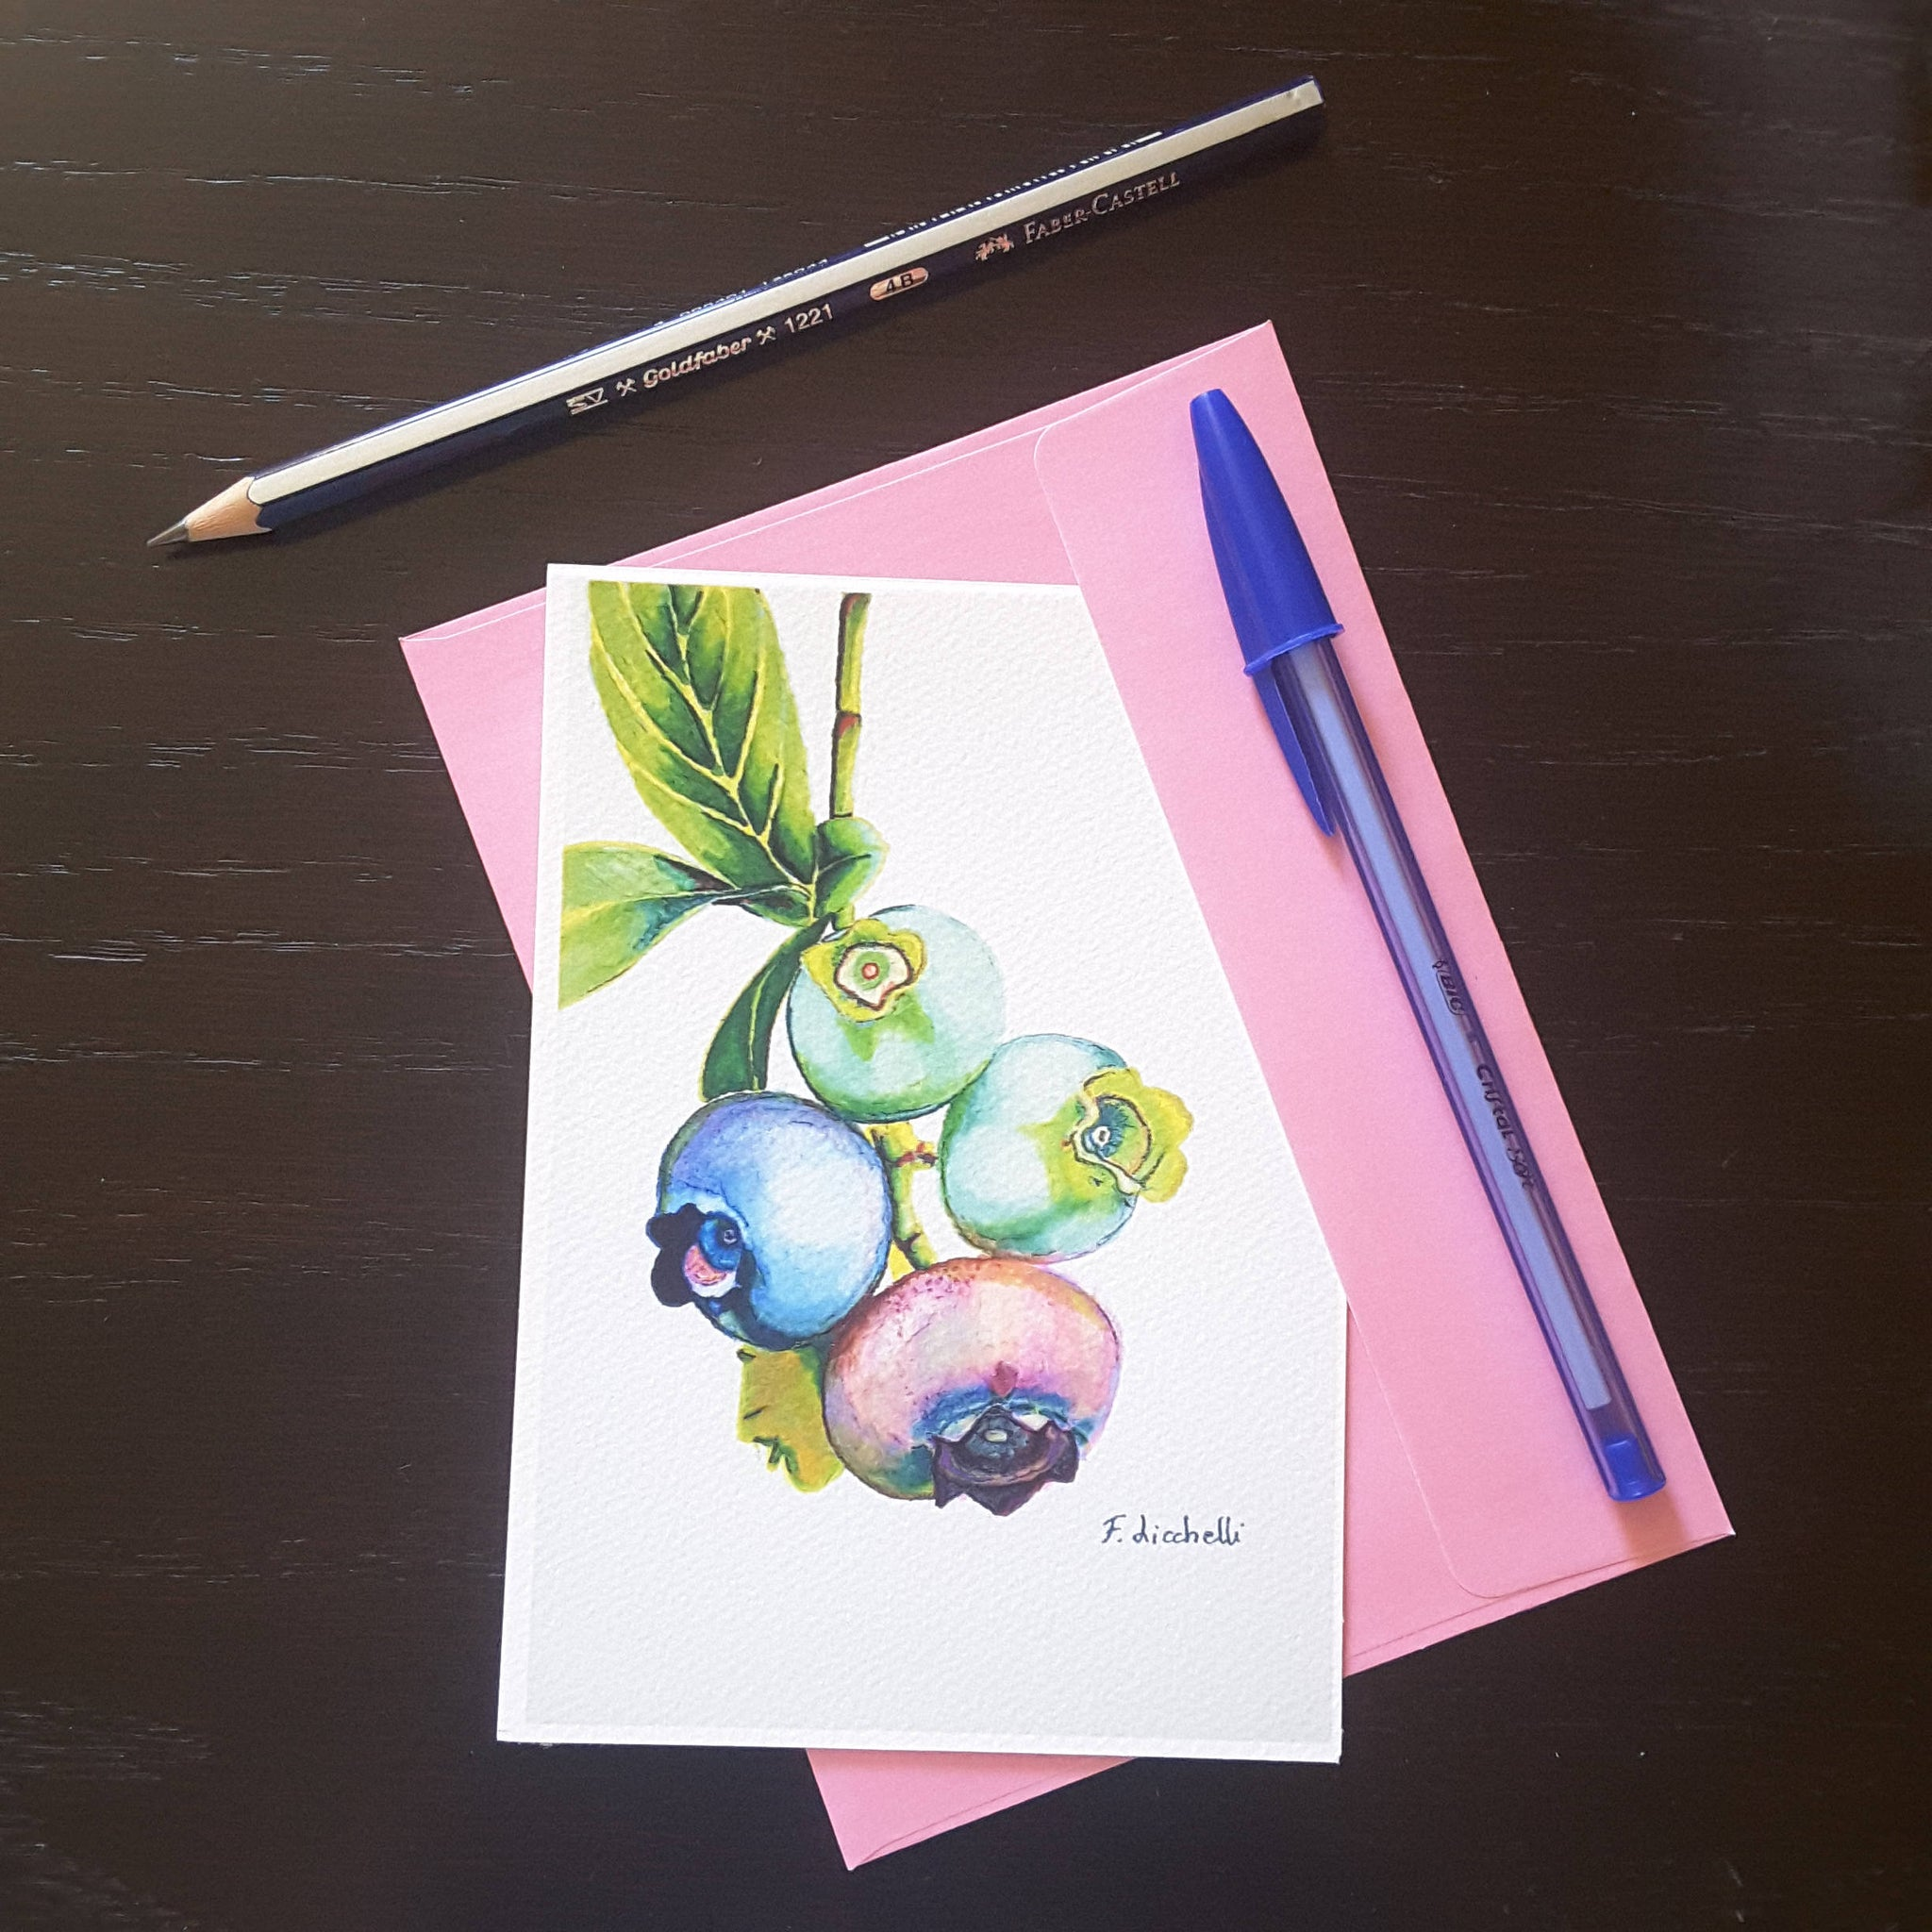 Greetings Cards Fruits Watercolors Still Life Gicle Fine Art Prin